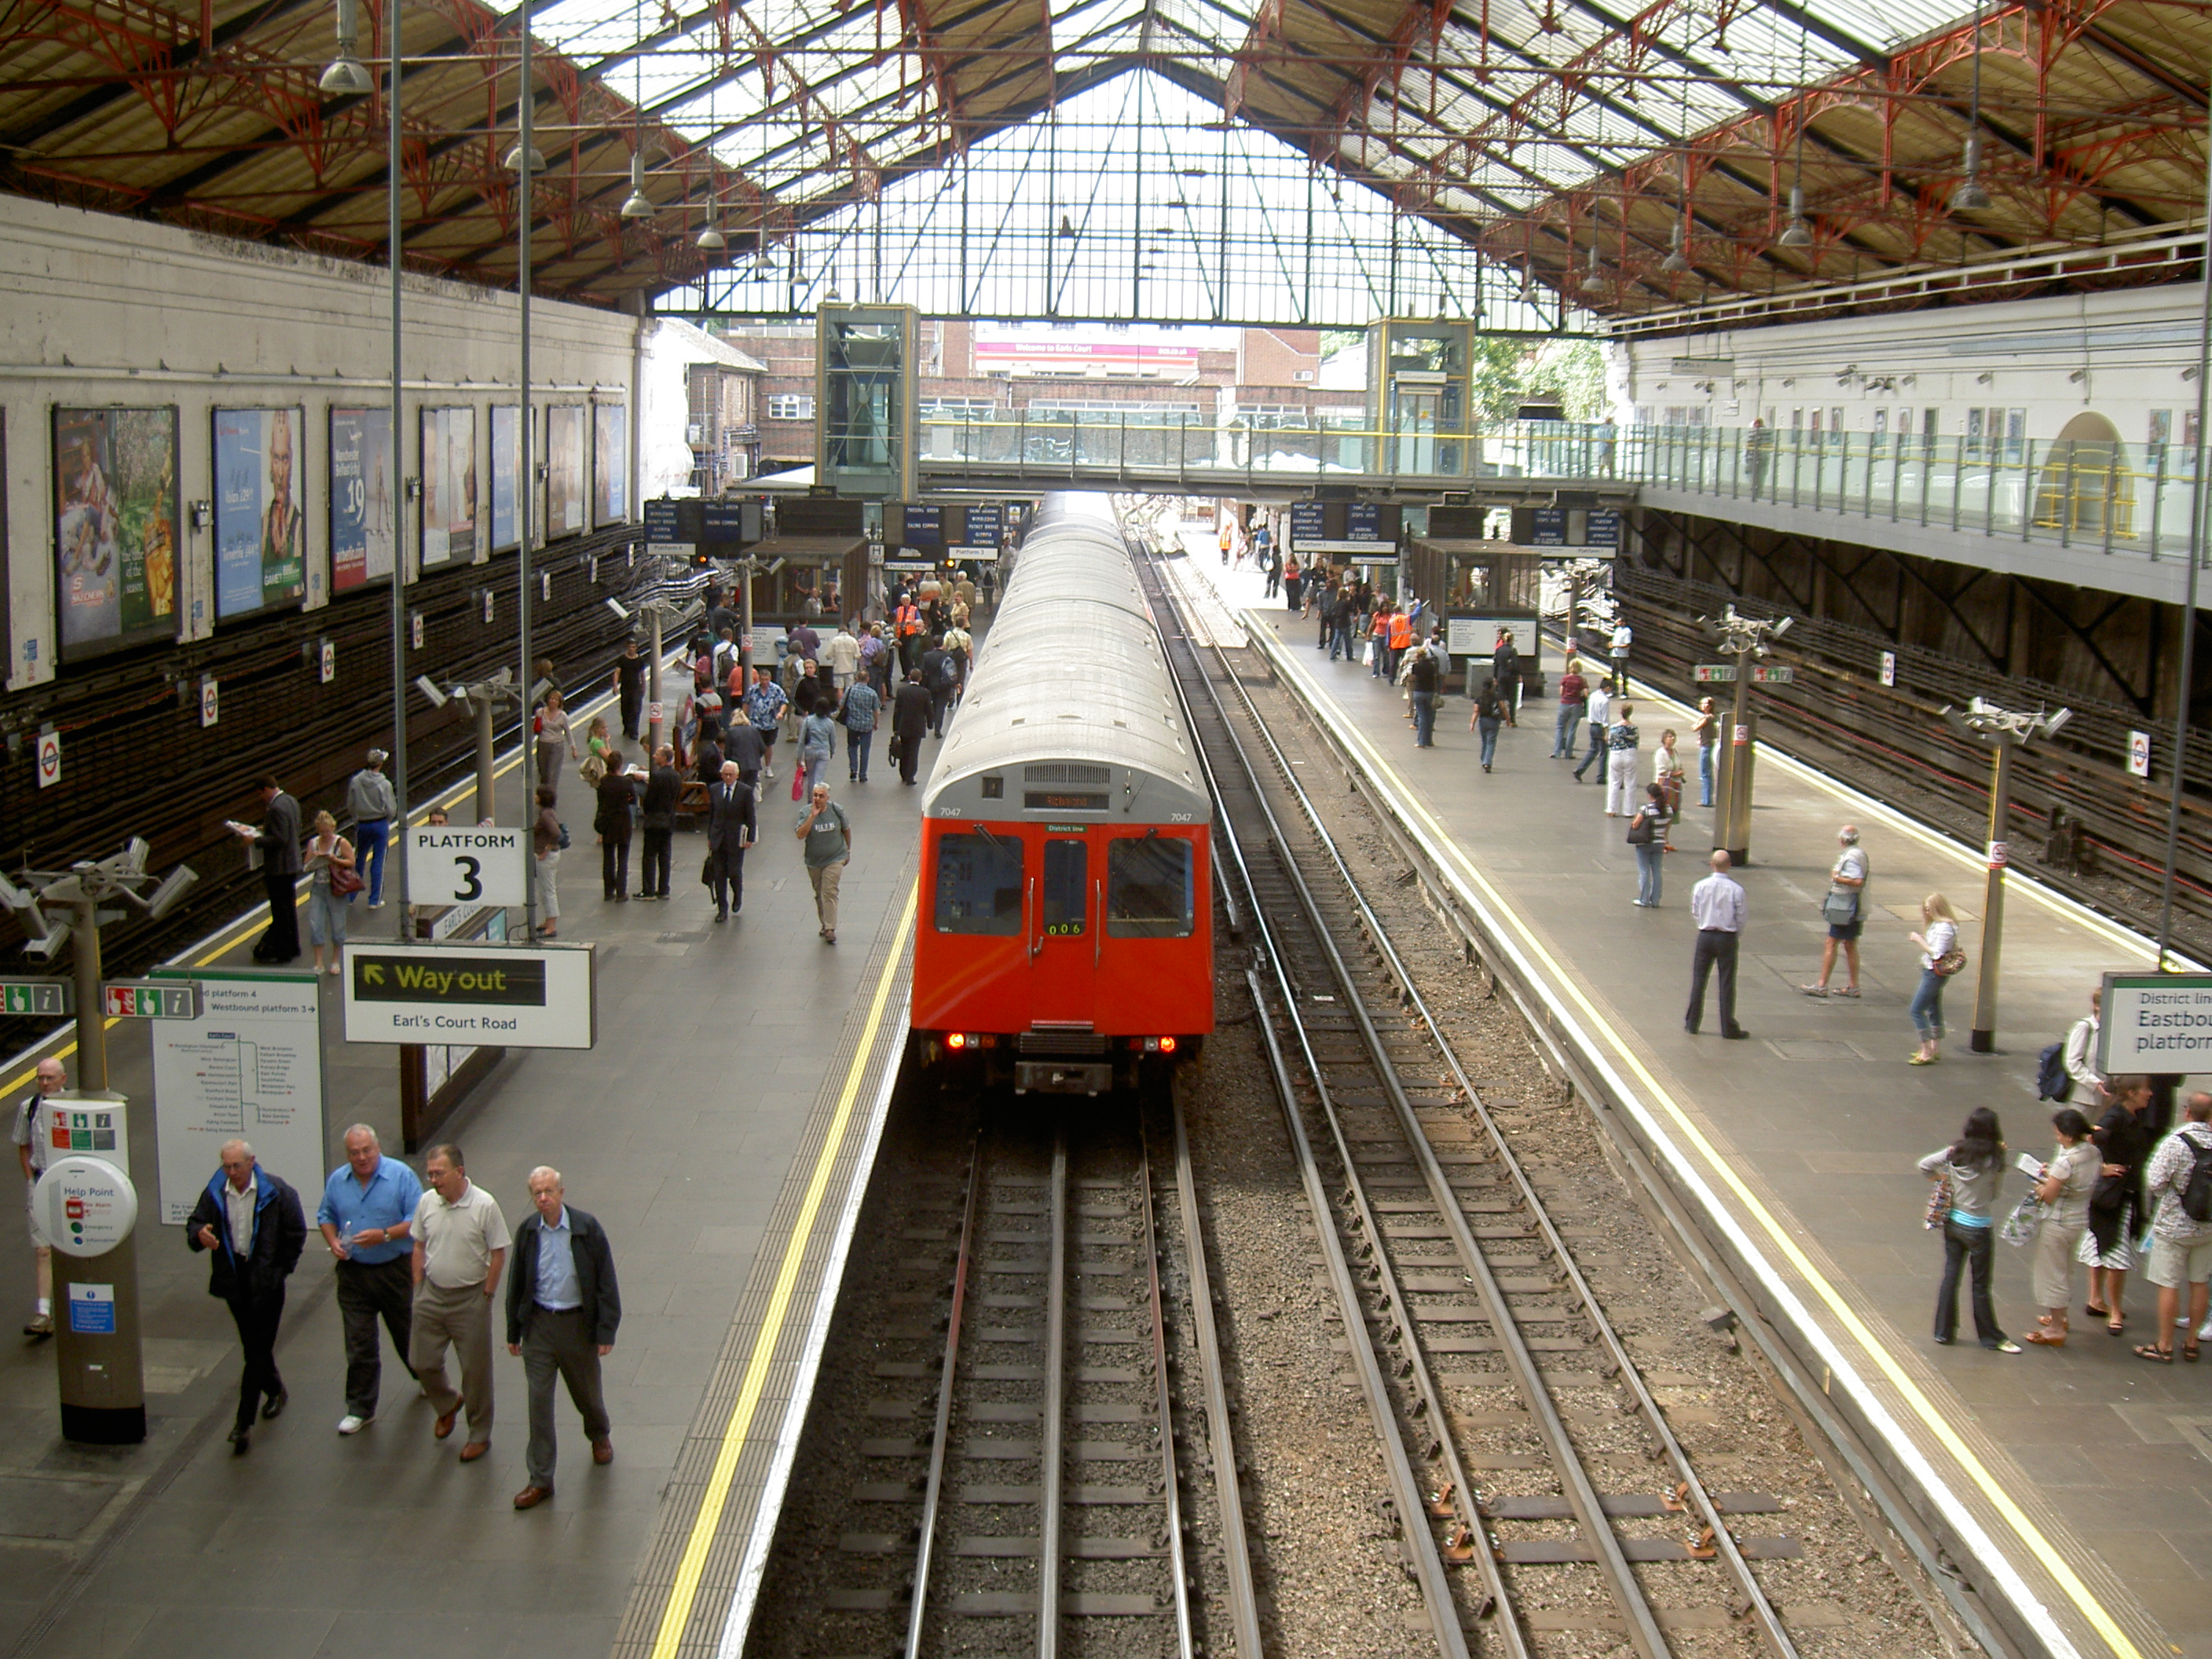 File:London Train Station.jpg - Wikimedia Commons